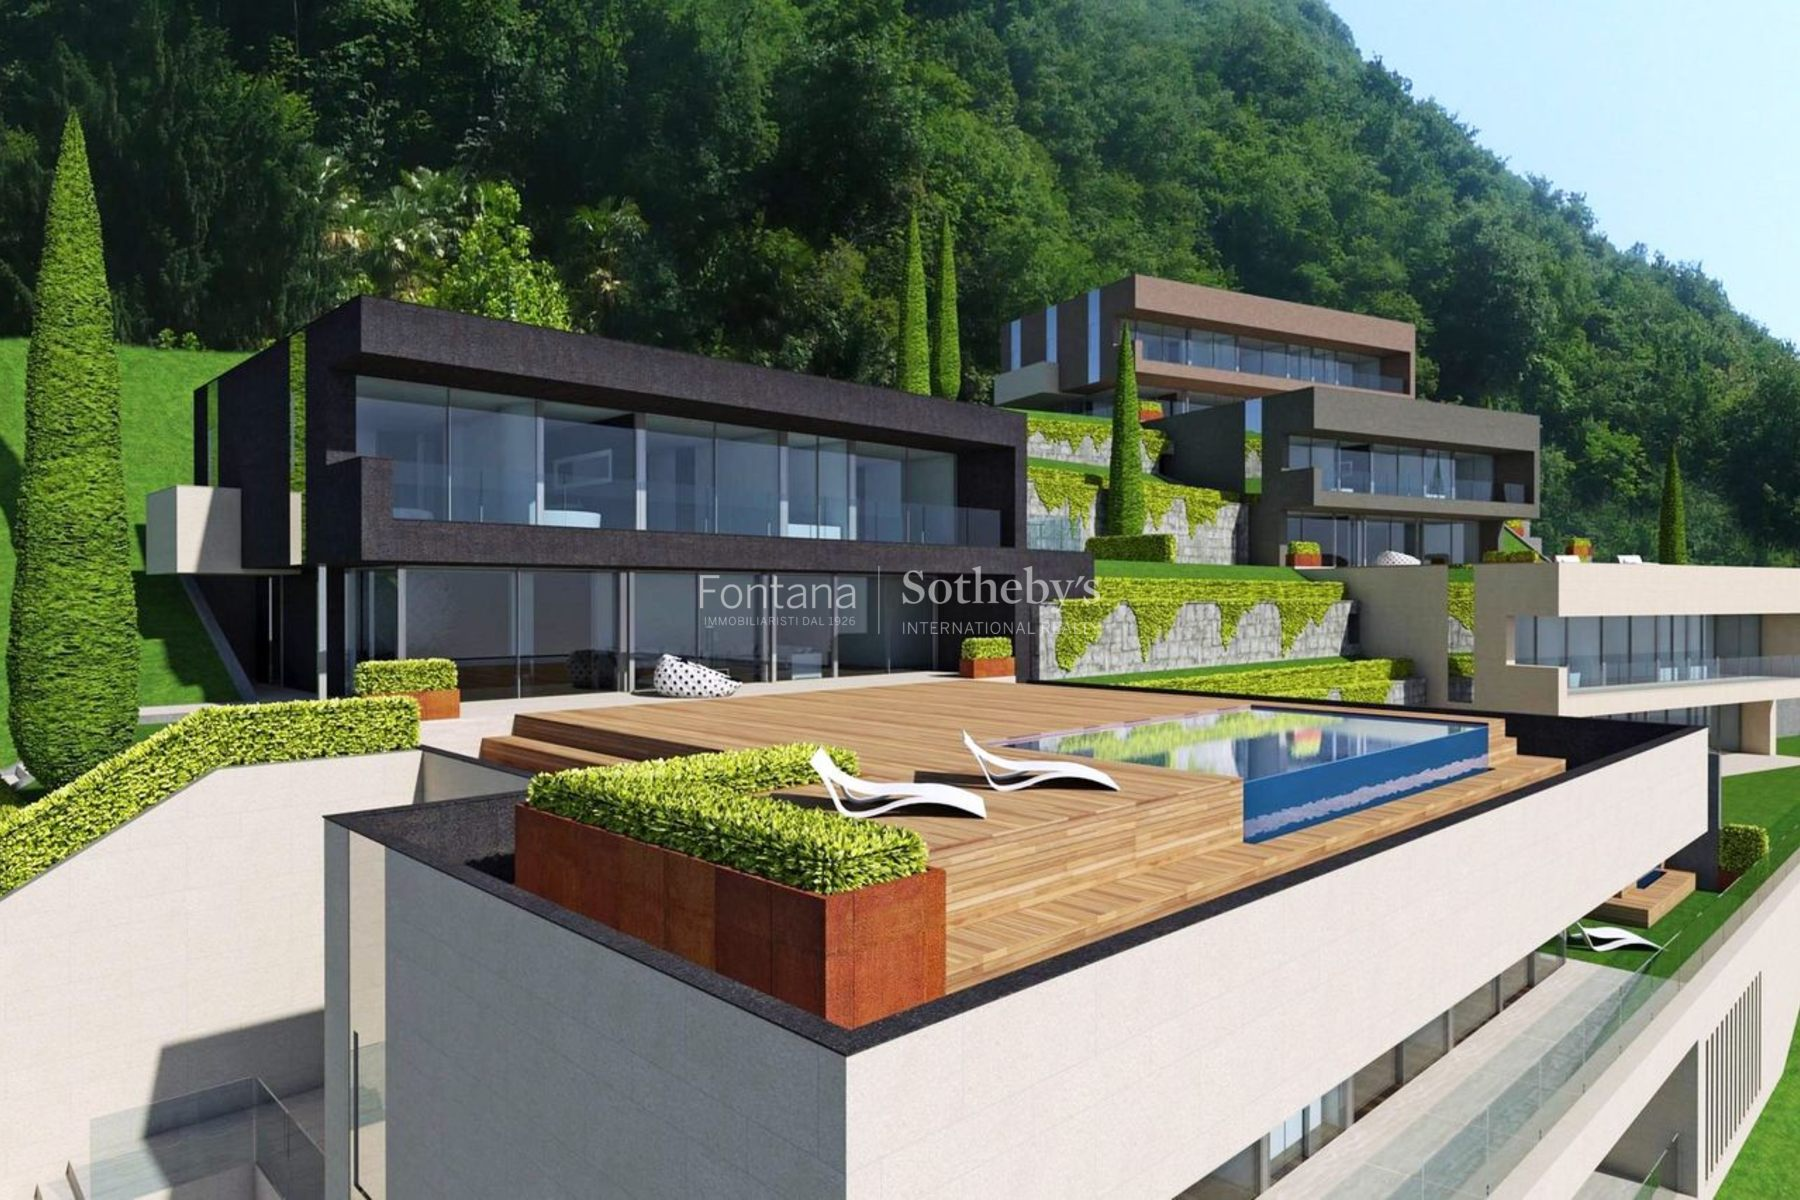 Single Family Home for Sale at DOMVS SOLIS - Villa D Castagnola Castagnola, Ticino, 6976 Switzerland